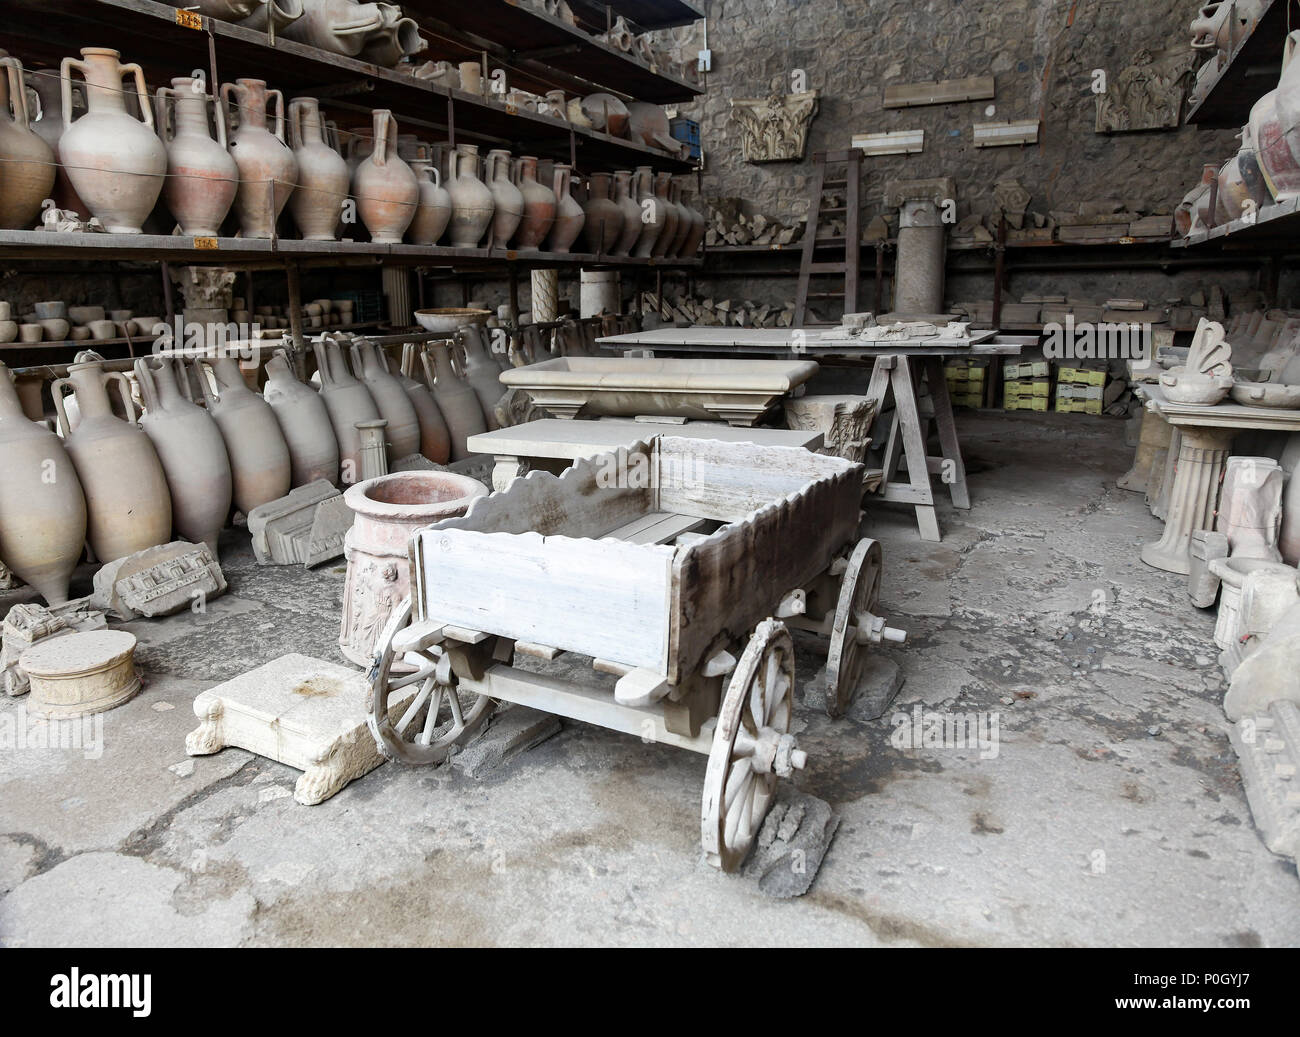 A wooden cart and pottery amphora preserved in the ash at the Pompeii Archaeological site, Pompeii, Campania, Italy, - Stock Image